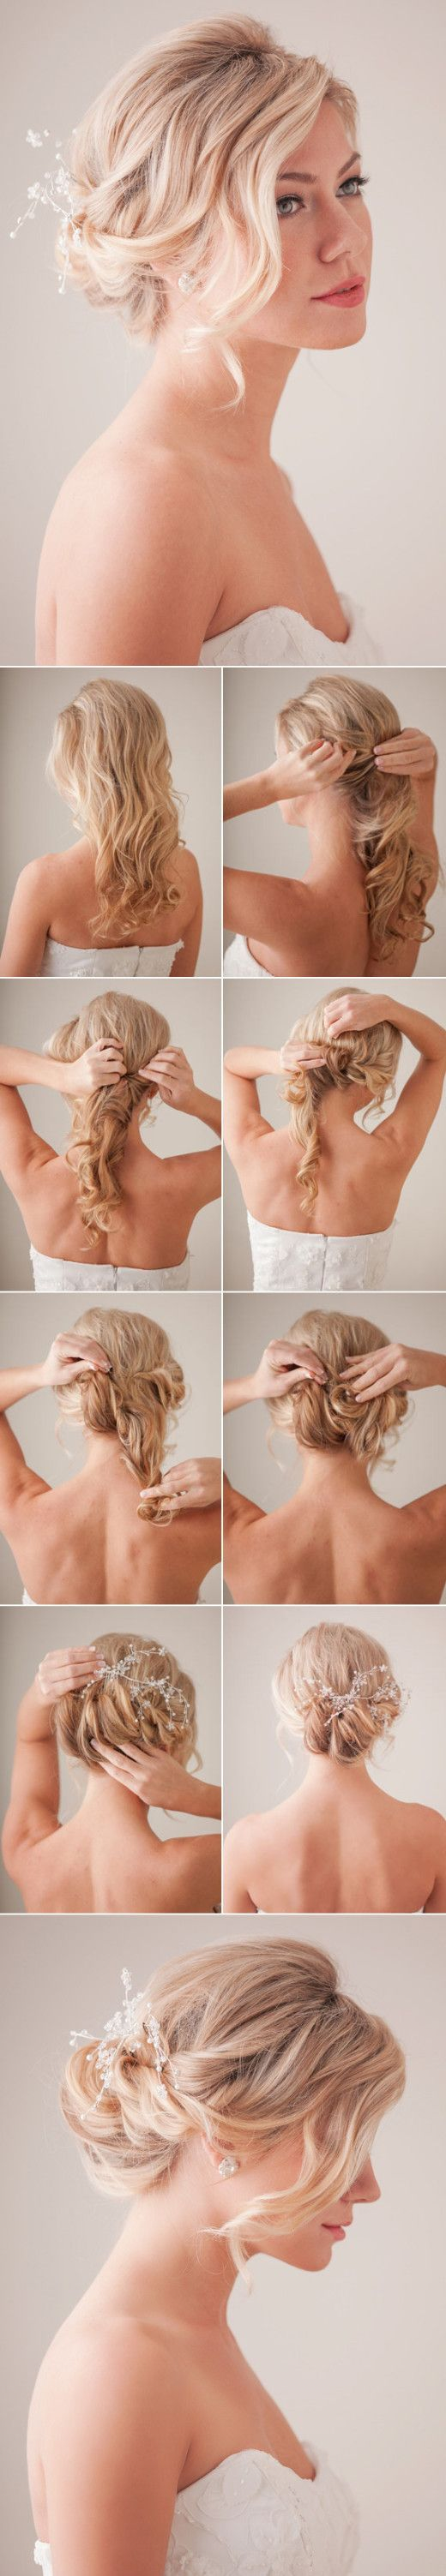 #DIY Bridal hair tutorial